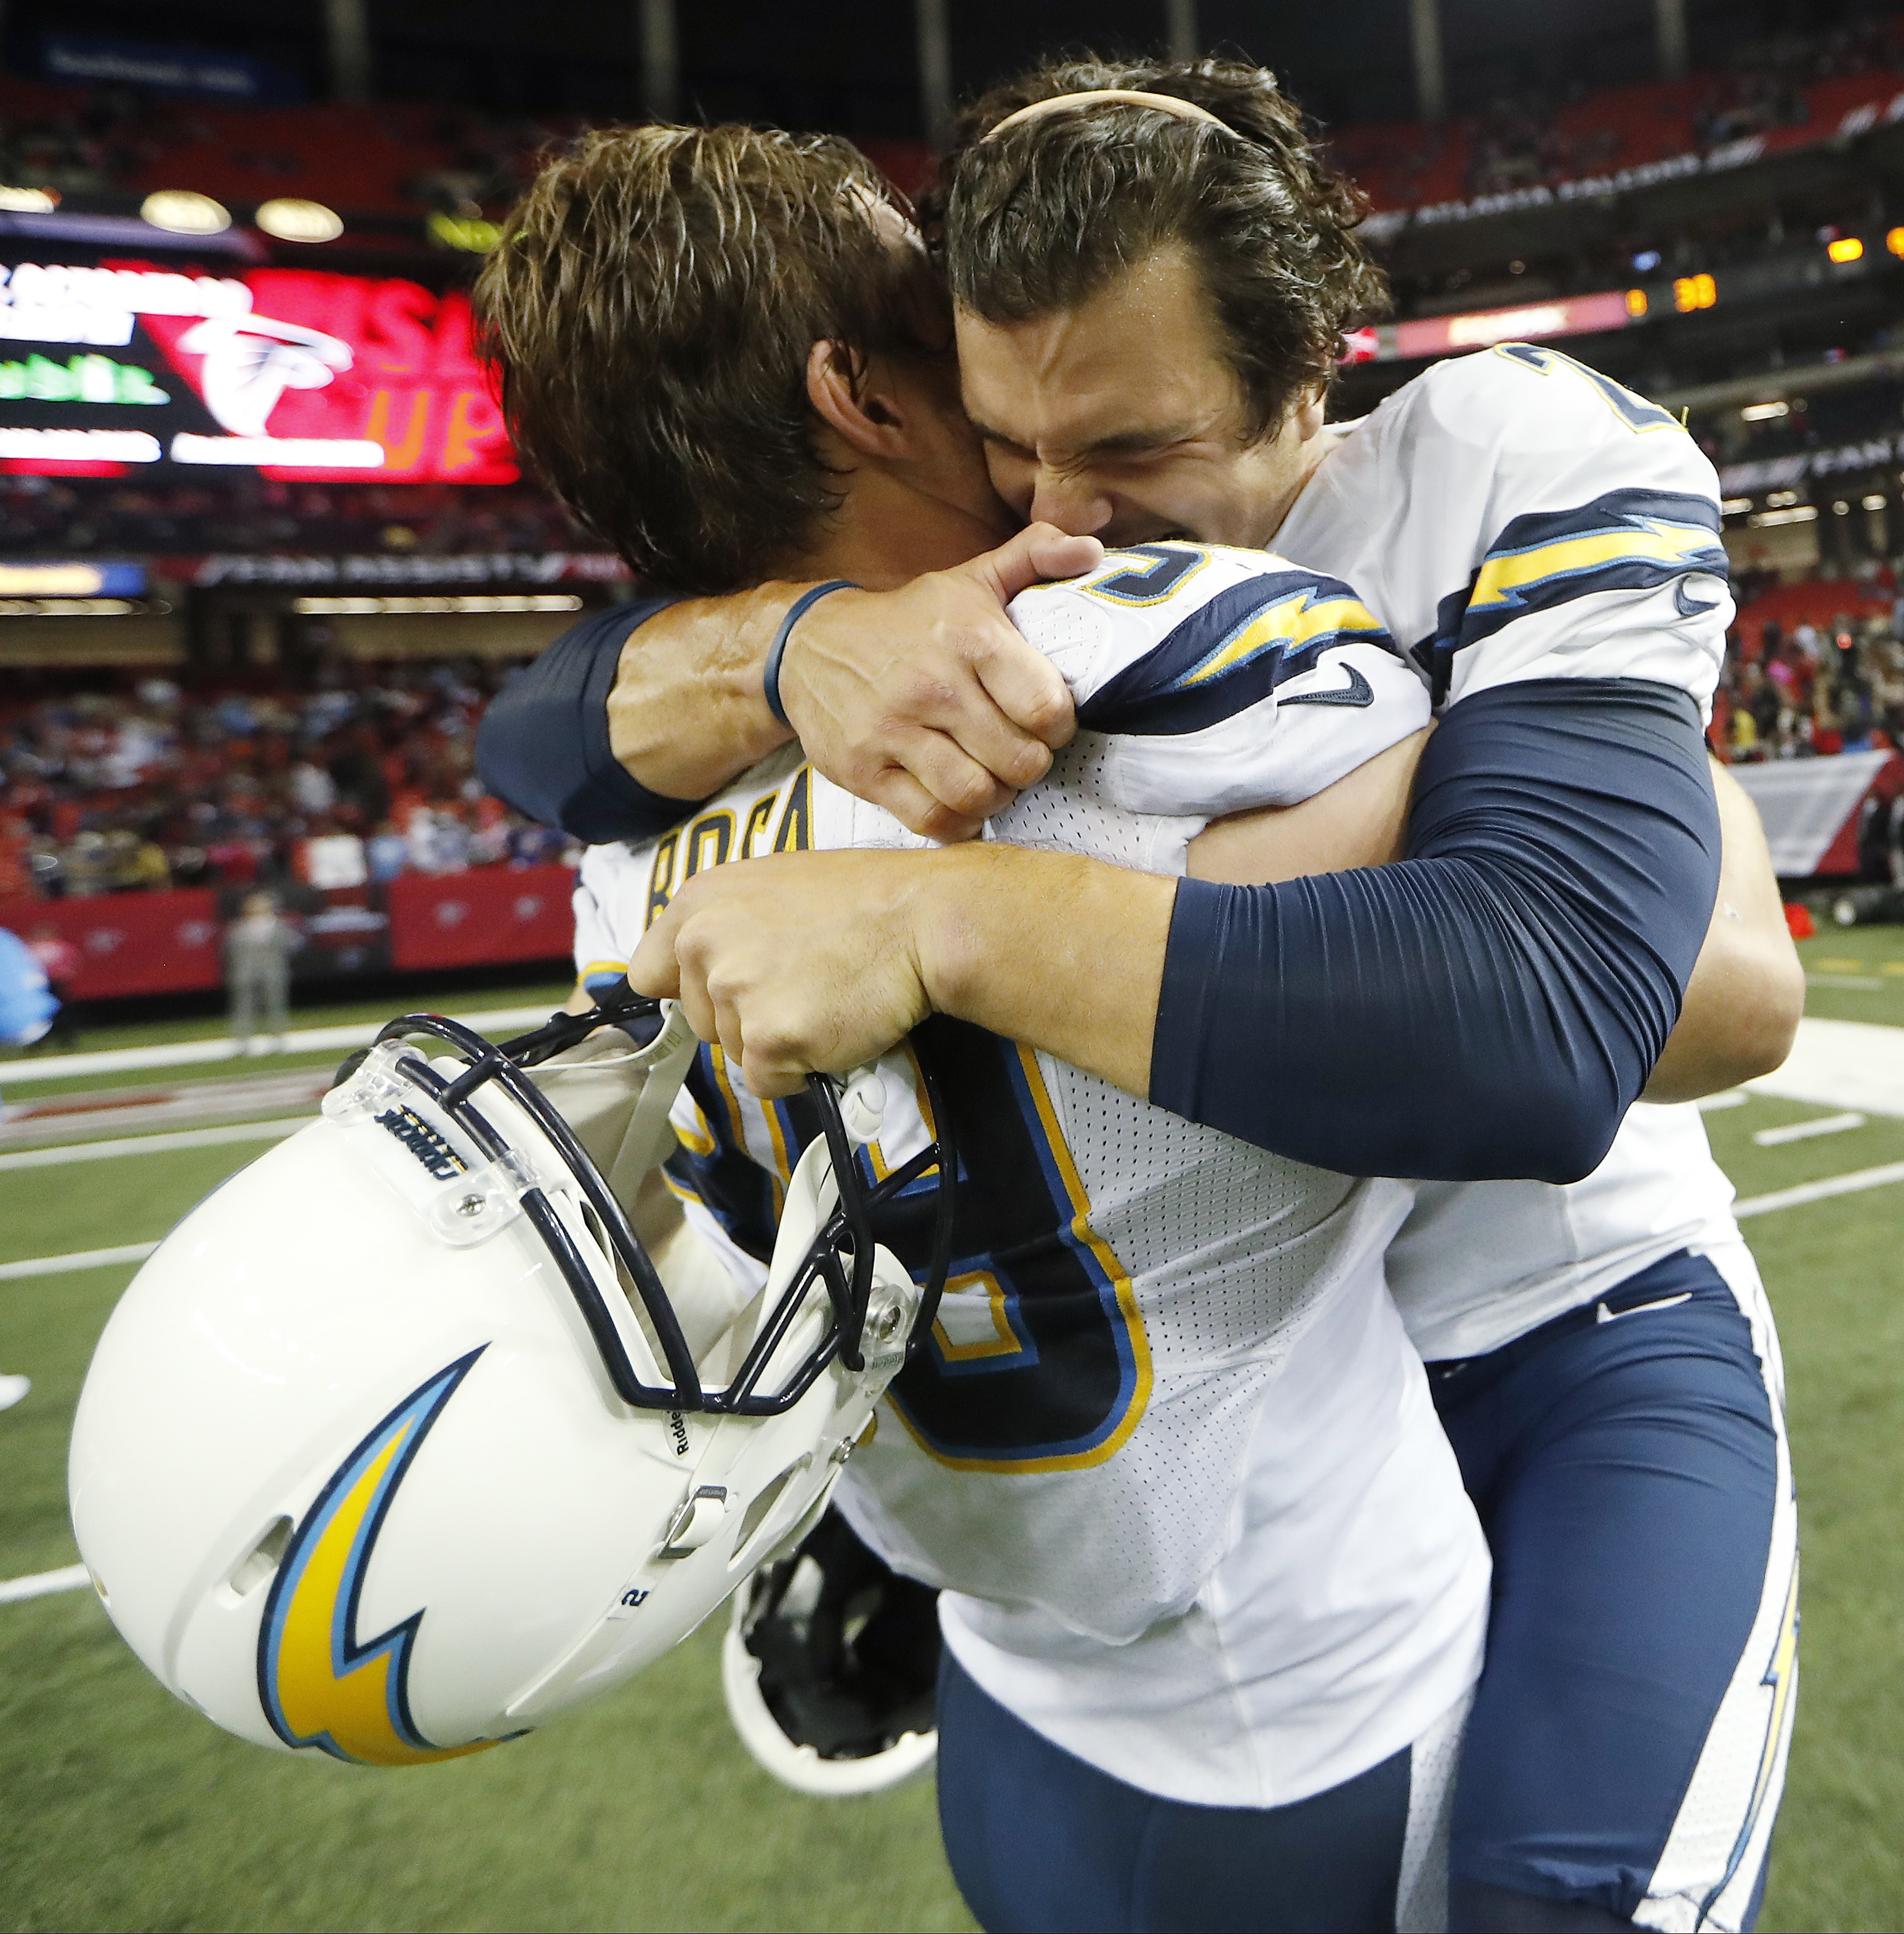 FILE - In this Oct. 23, 2016, file photo, San Diego Chargers kicker Josh Lambo, right embraces Chargers defensive end Joey Bosa (99) after Lambo kicked the game winning field goal in overtime of an NFL football game in Atlanta. Don't twerk. Don't pretend